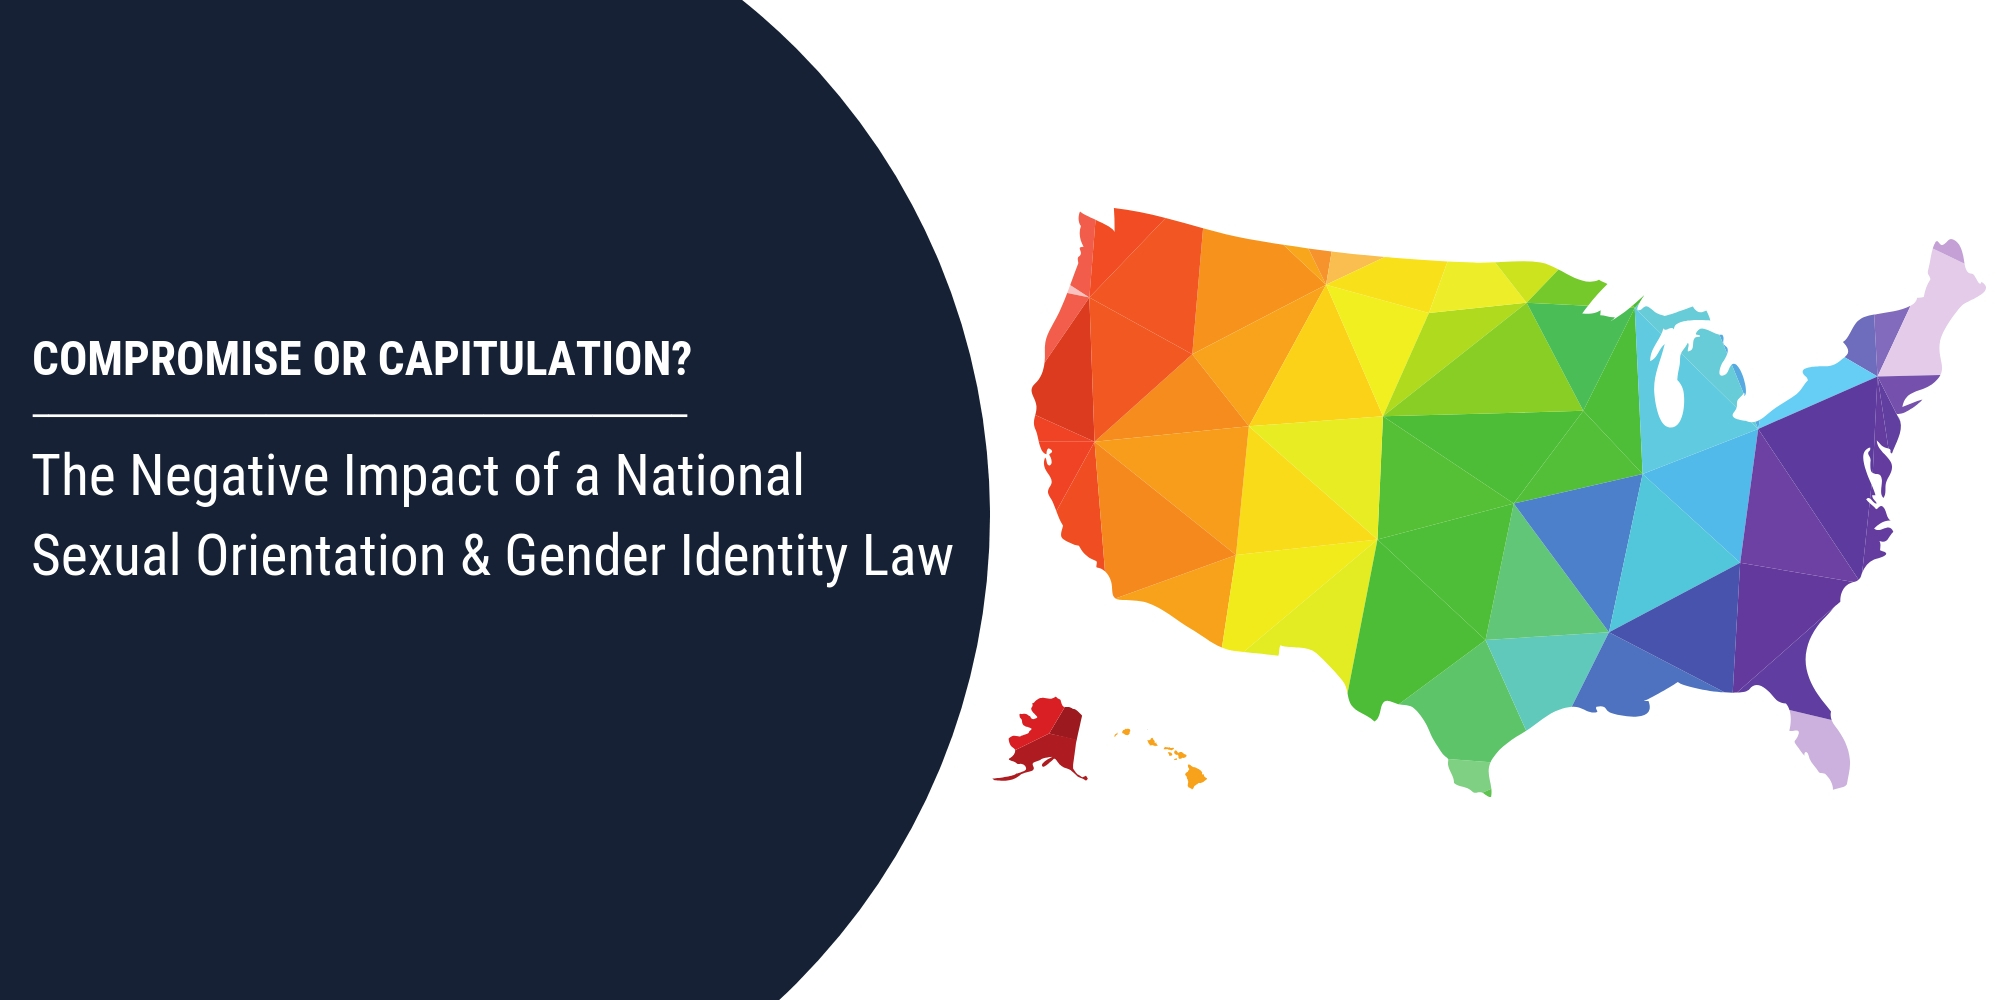 Compromise or Capitulation? The Negative Impact of a National Sexual Orientation and Gender Identity Law